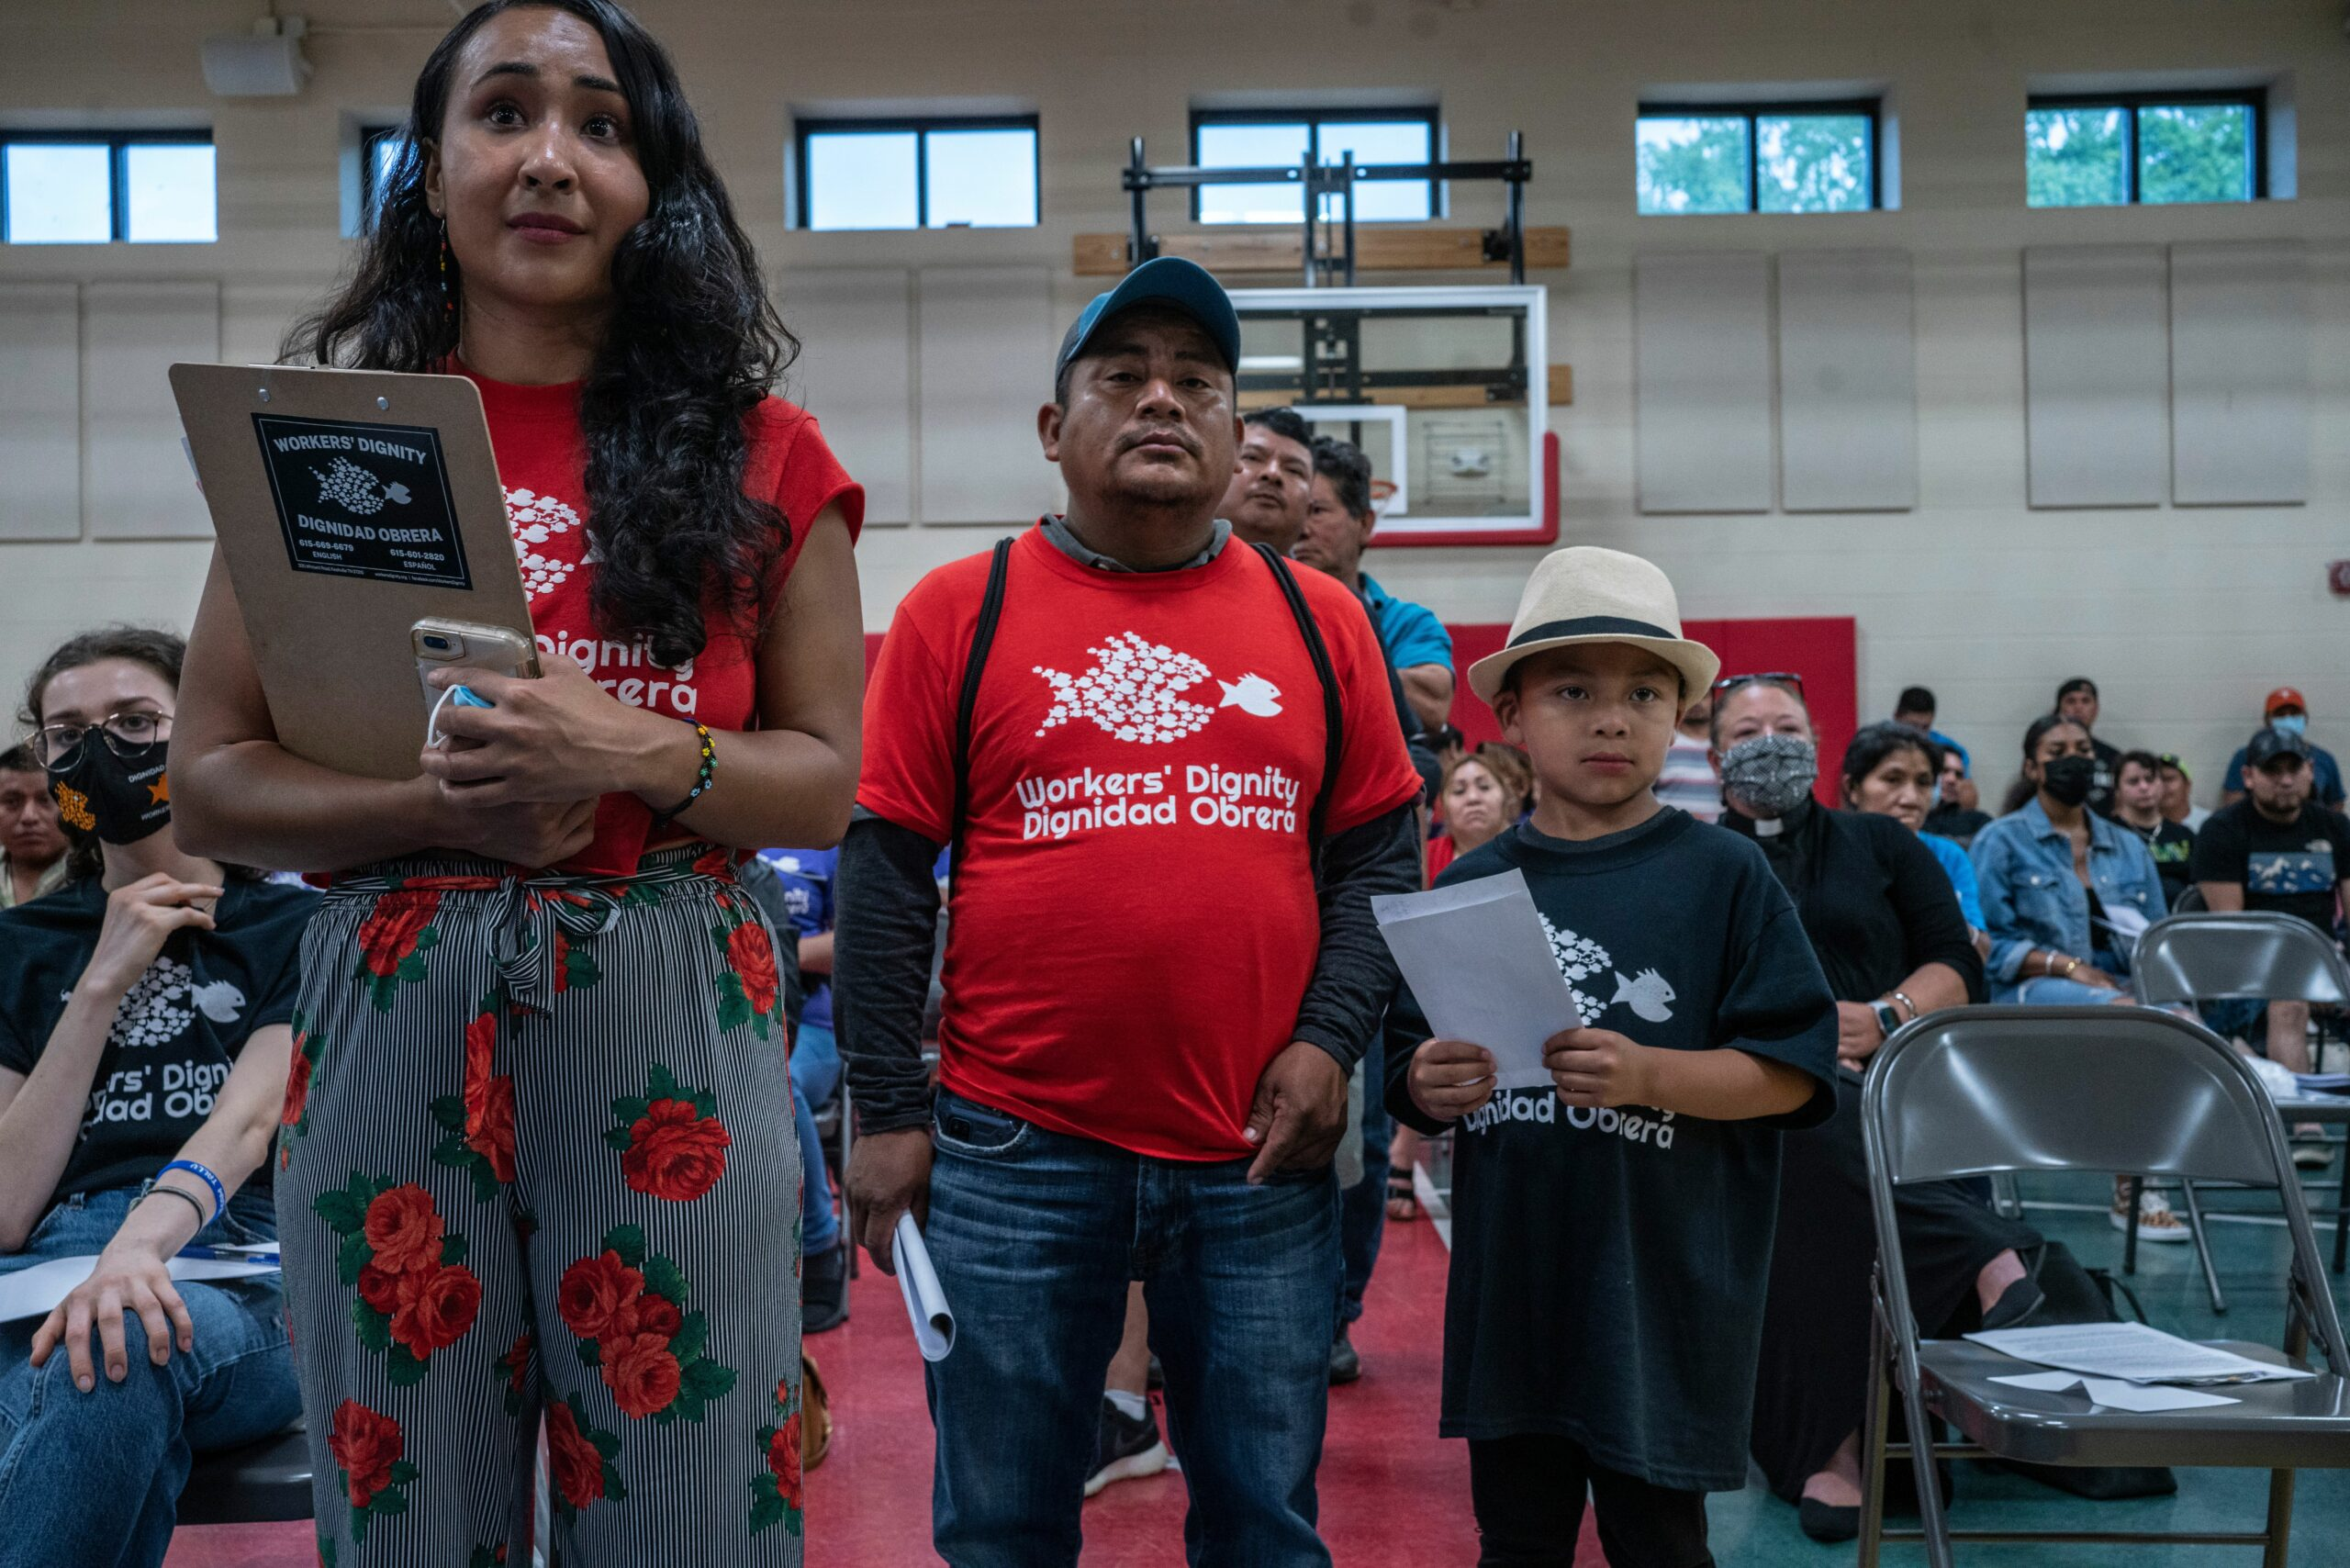 Eviction moratorium nears end and oustings have started